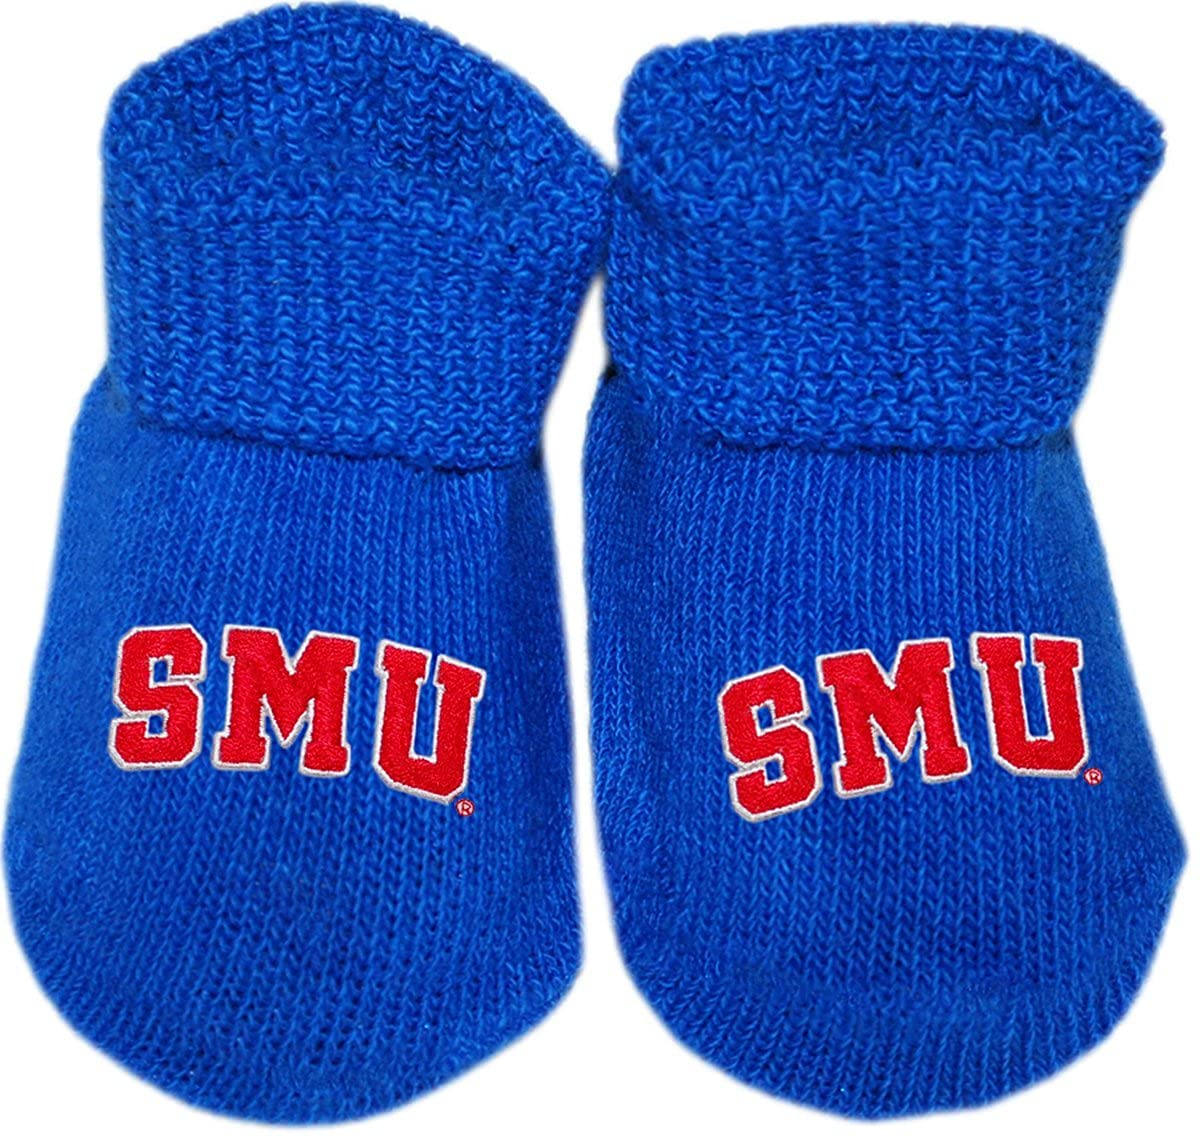 Southern Methodist University Arched SMU Newborn Baby Bootie Sock